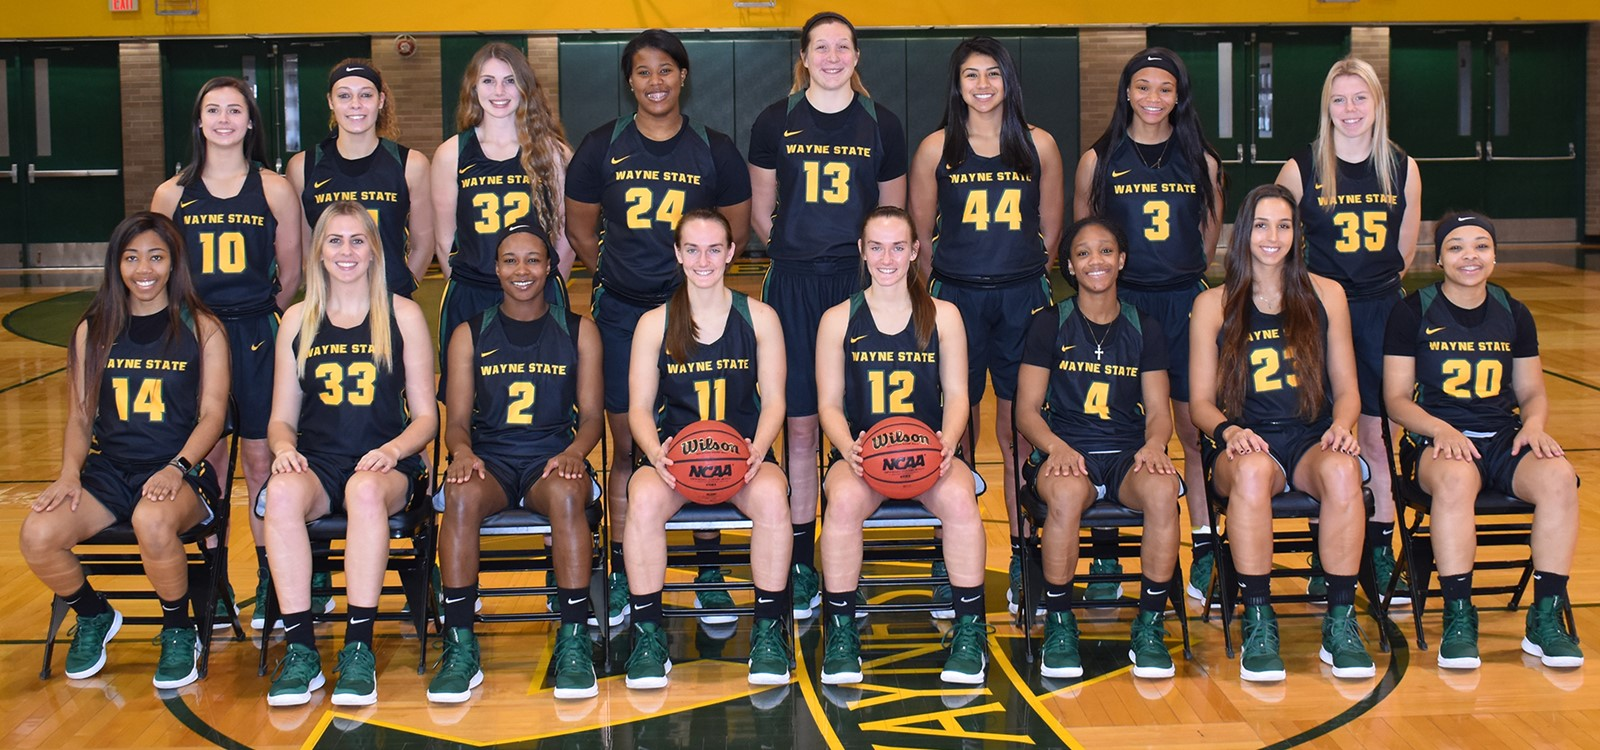 2018-19 Women's Basketball Roster - Wayne State University